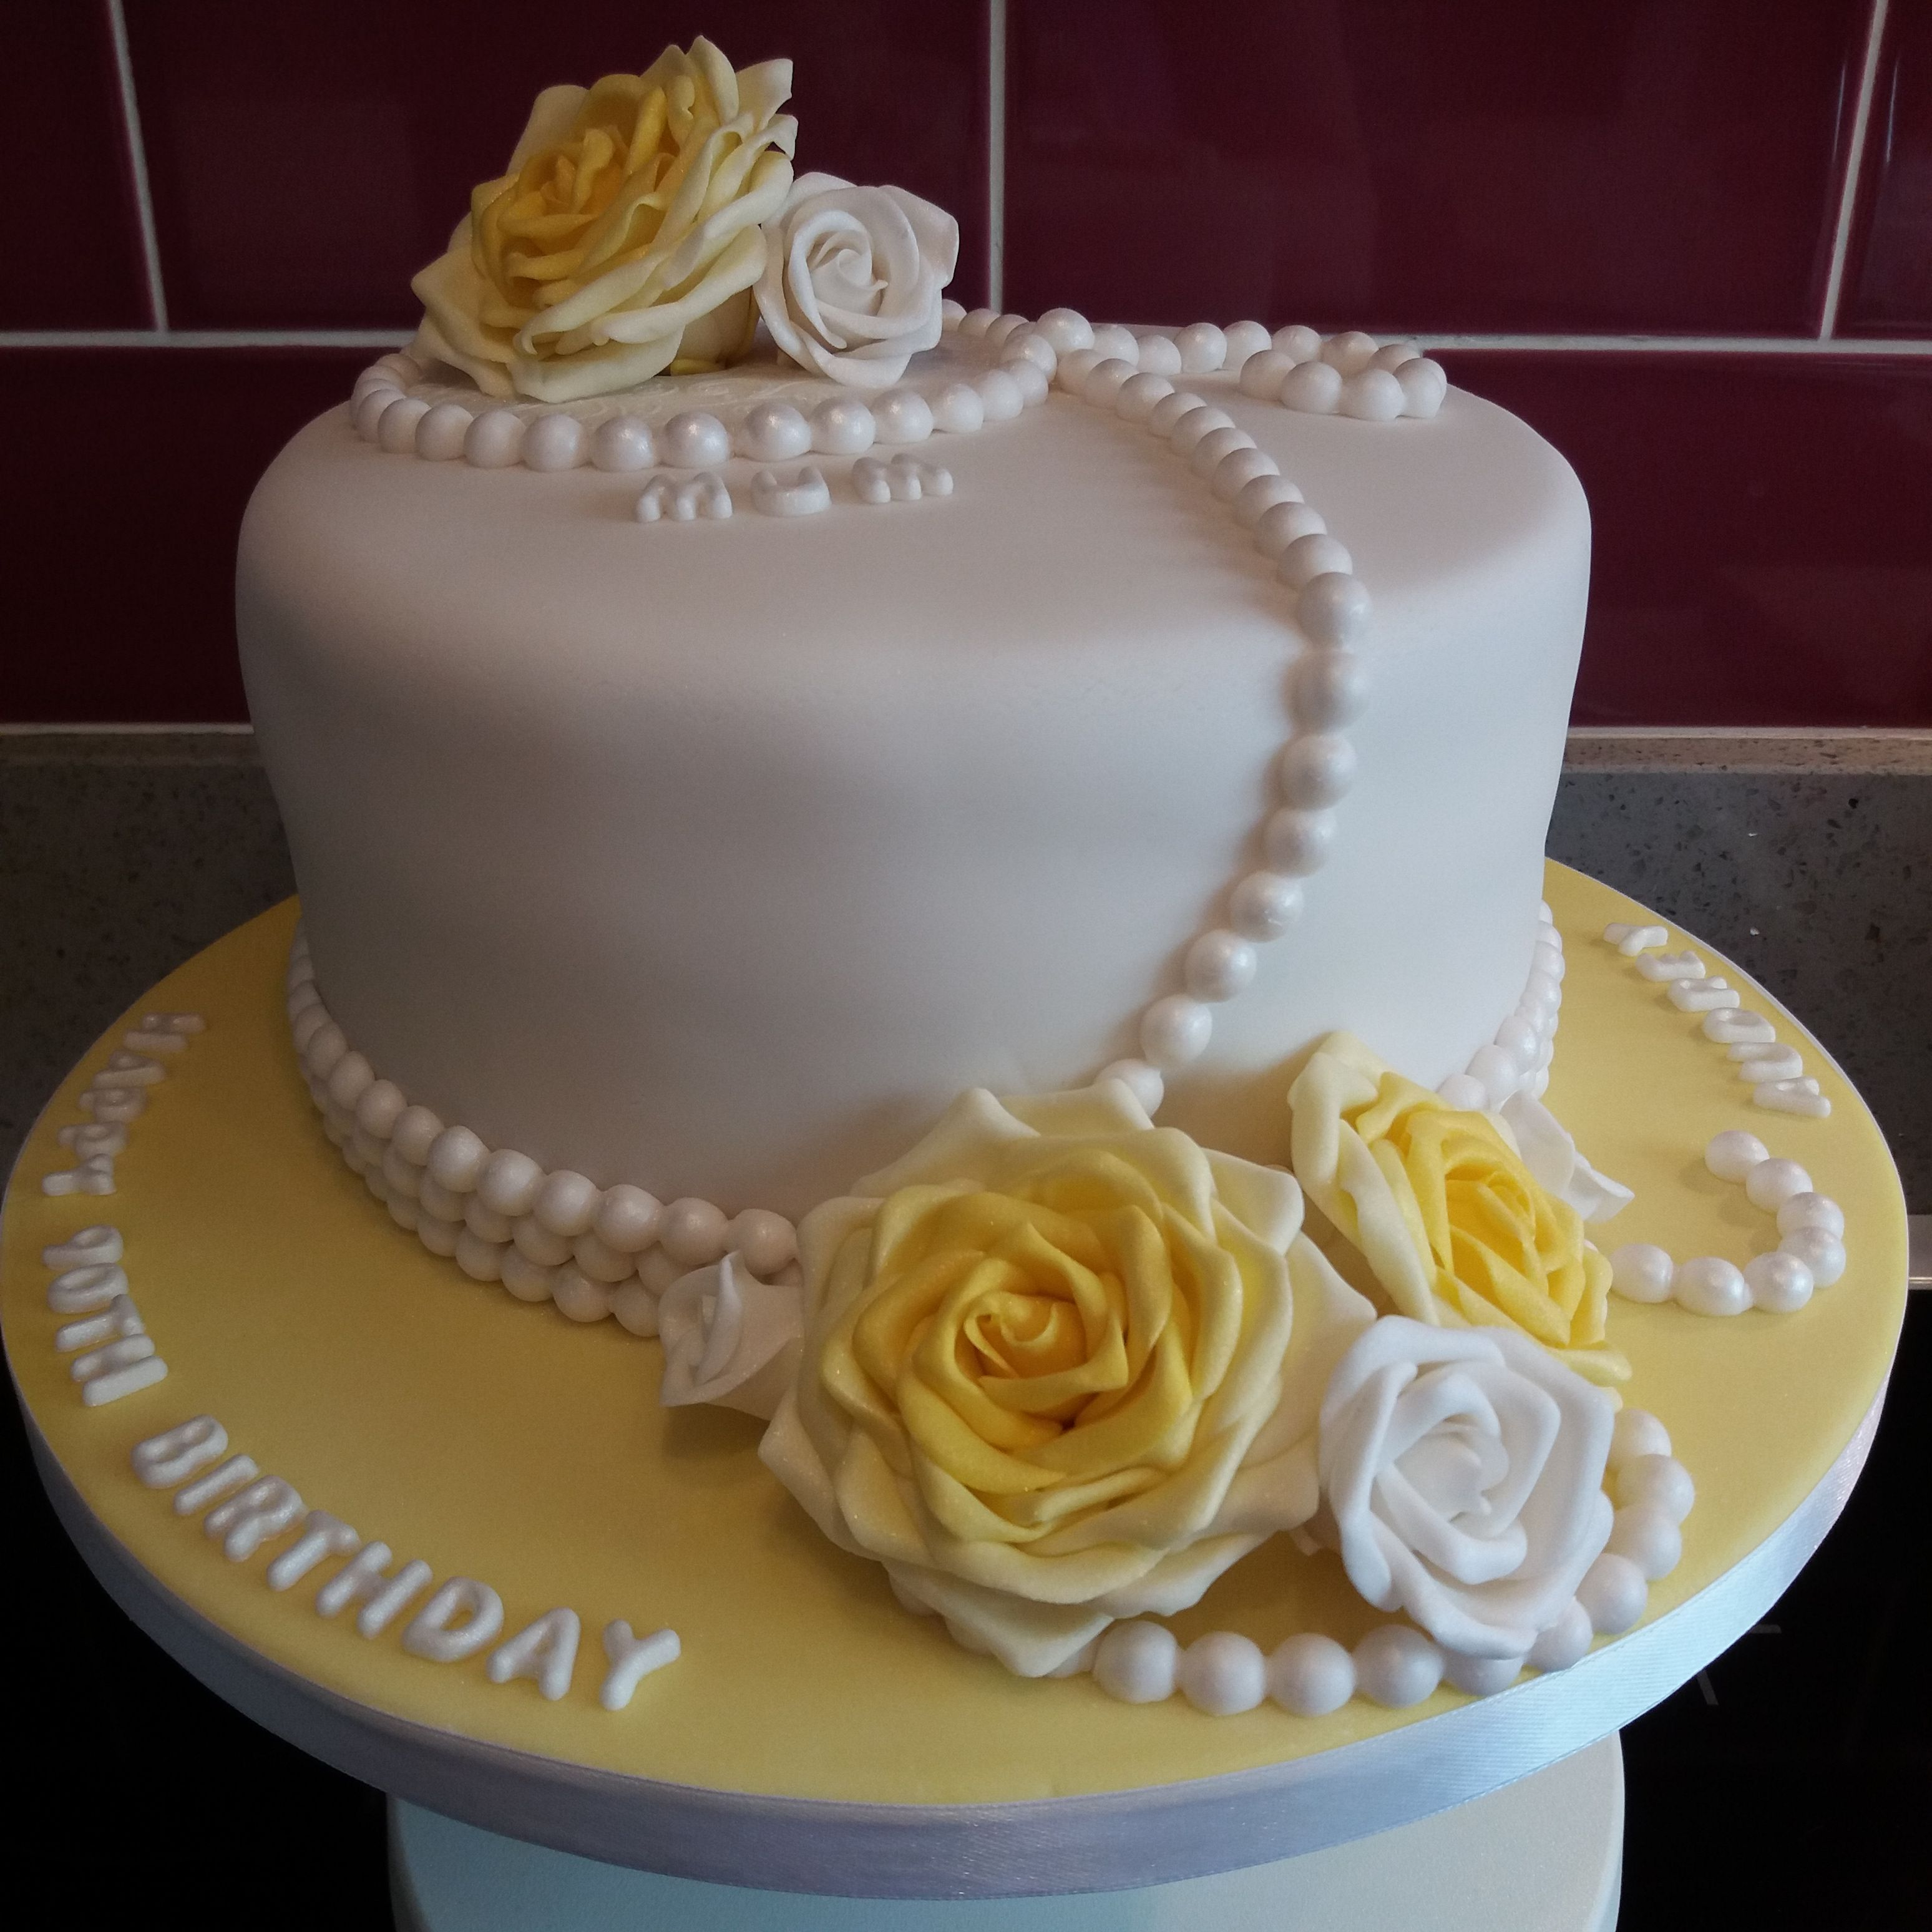 Excellent Yellow And White Rose With Pearls Birthday Cake With Images Funny Birthday Cards Online Fluifree Goldxyz